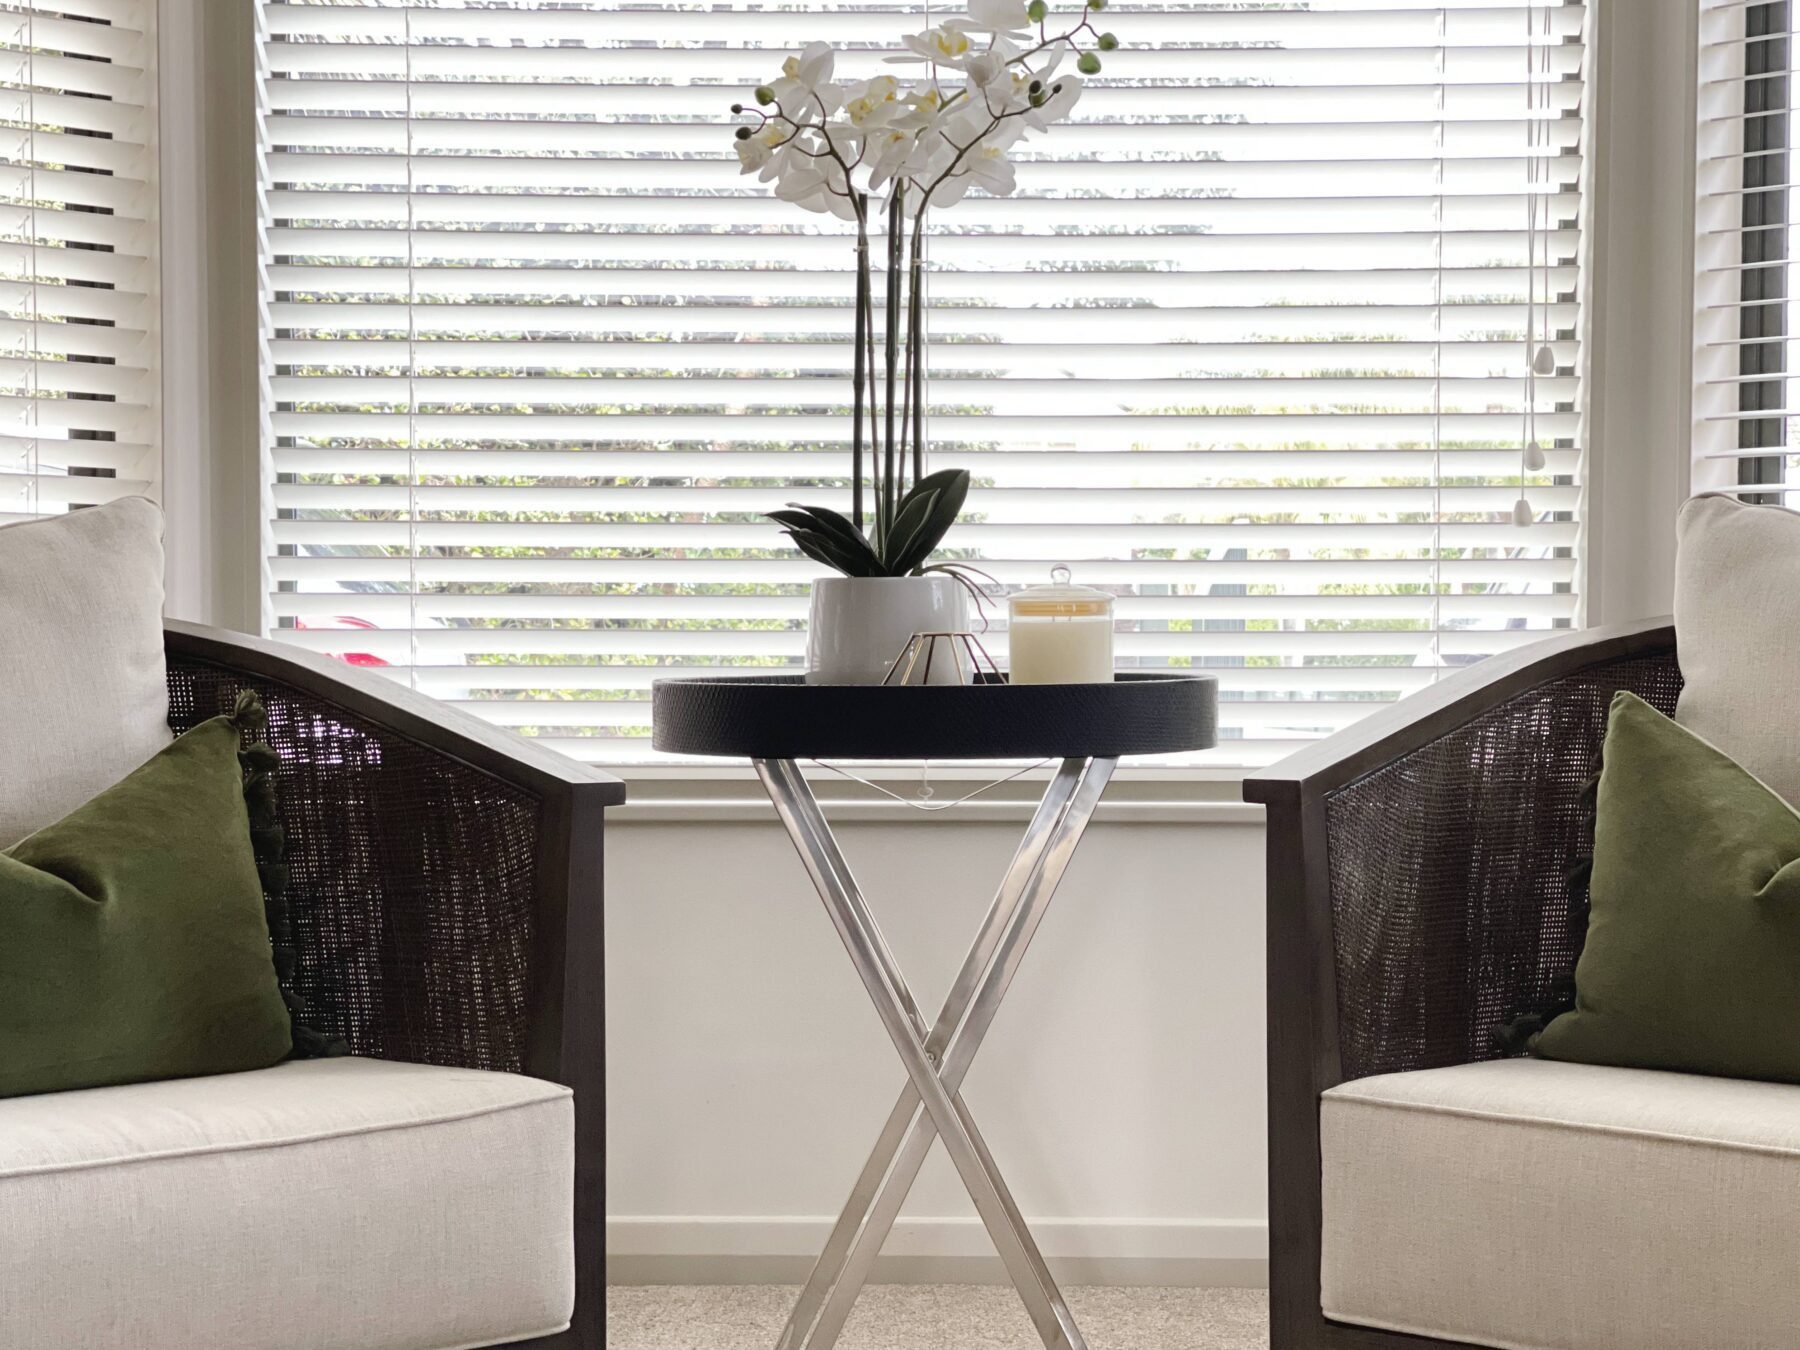 close up of dark wooden arm chairs with light linen fabric, green scatter cushions, round black side table with sliver metal legs, simple styling, white blinds, light carpet